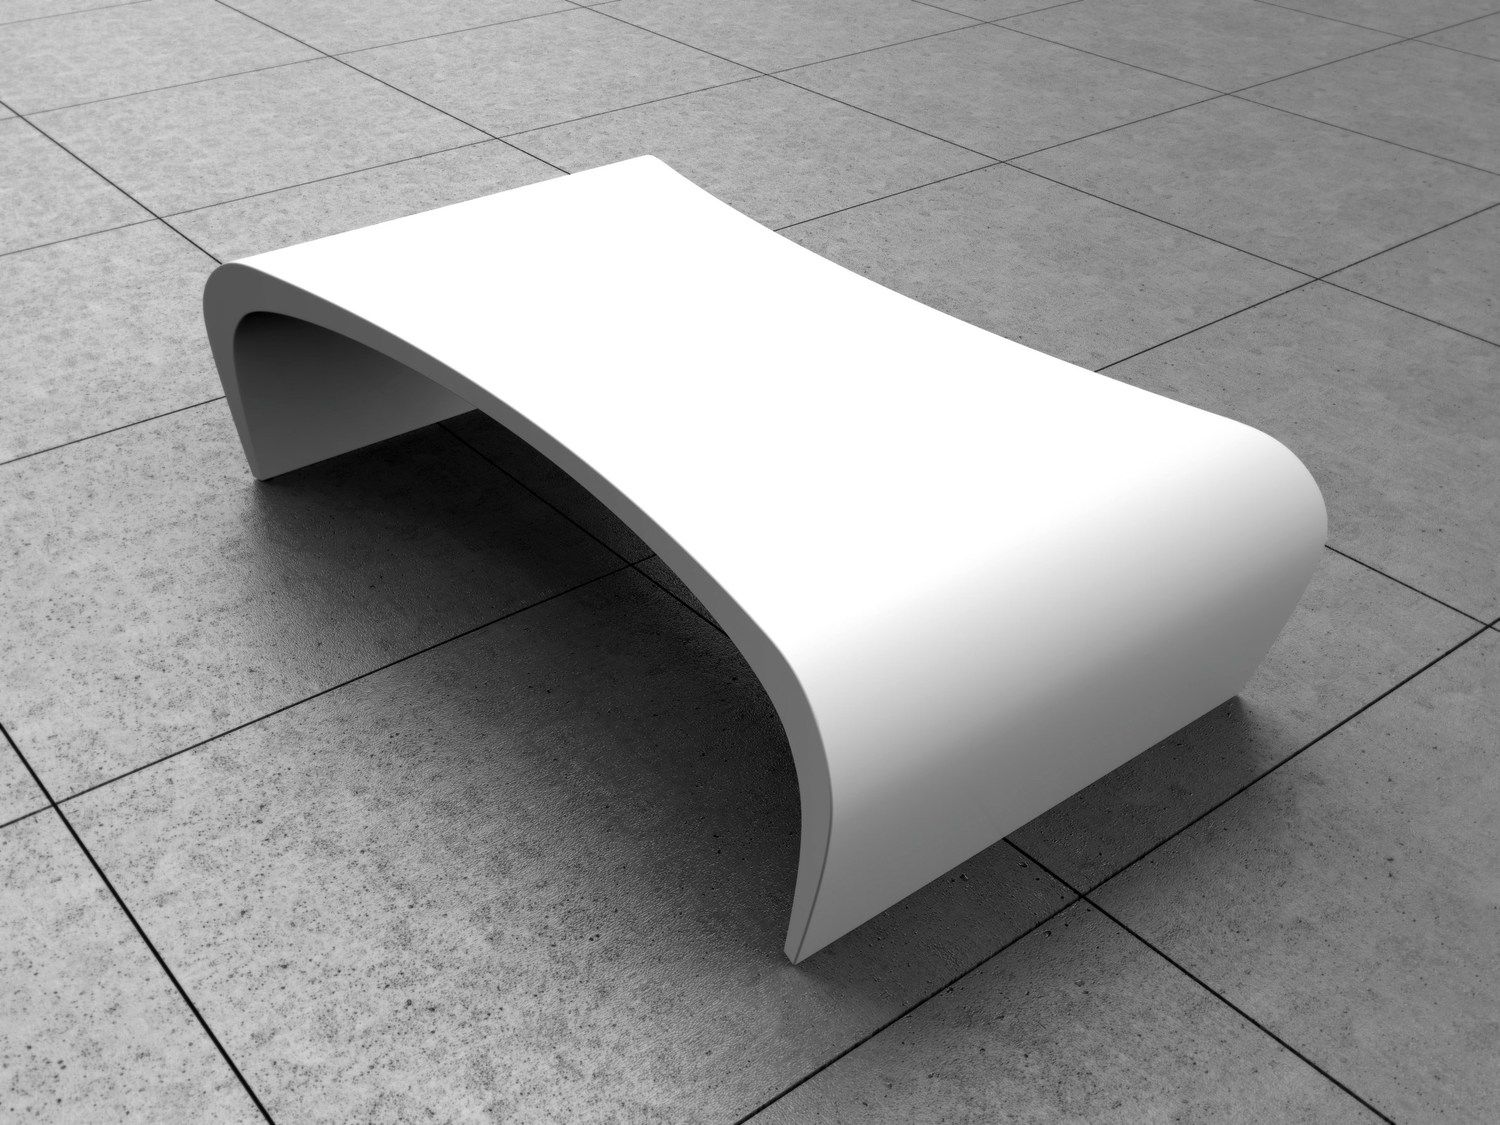 Cirrus Low Table Thermoformed Corian Corian Low Tables Design [ 1125 x 1500 Pixel ]